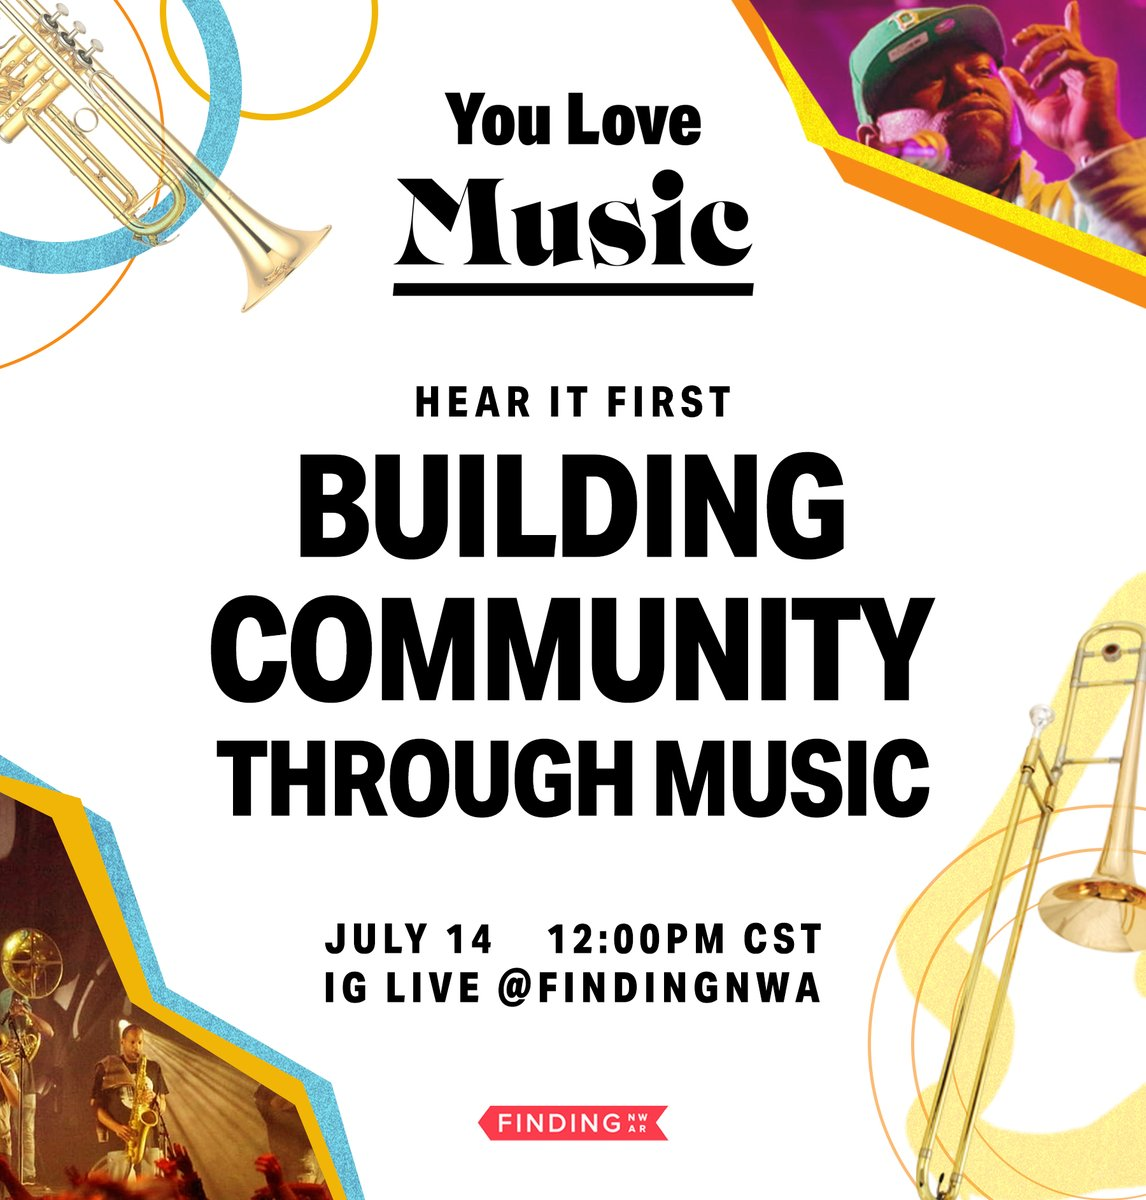 Join @findingnwa on July 14th at 12 p.m. CST for the next event in the You Love speaker series, an Instagram Live event on Building Community Through Music. @NWArkCouncil findingnwa.com/northwest-arka…